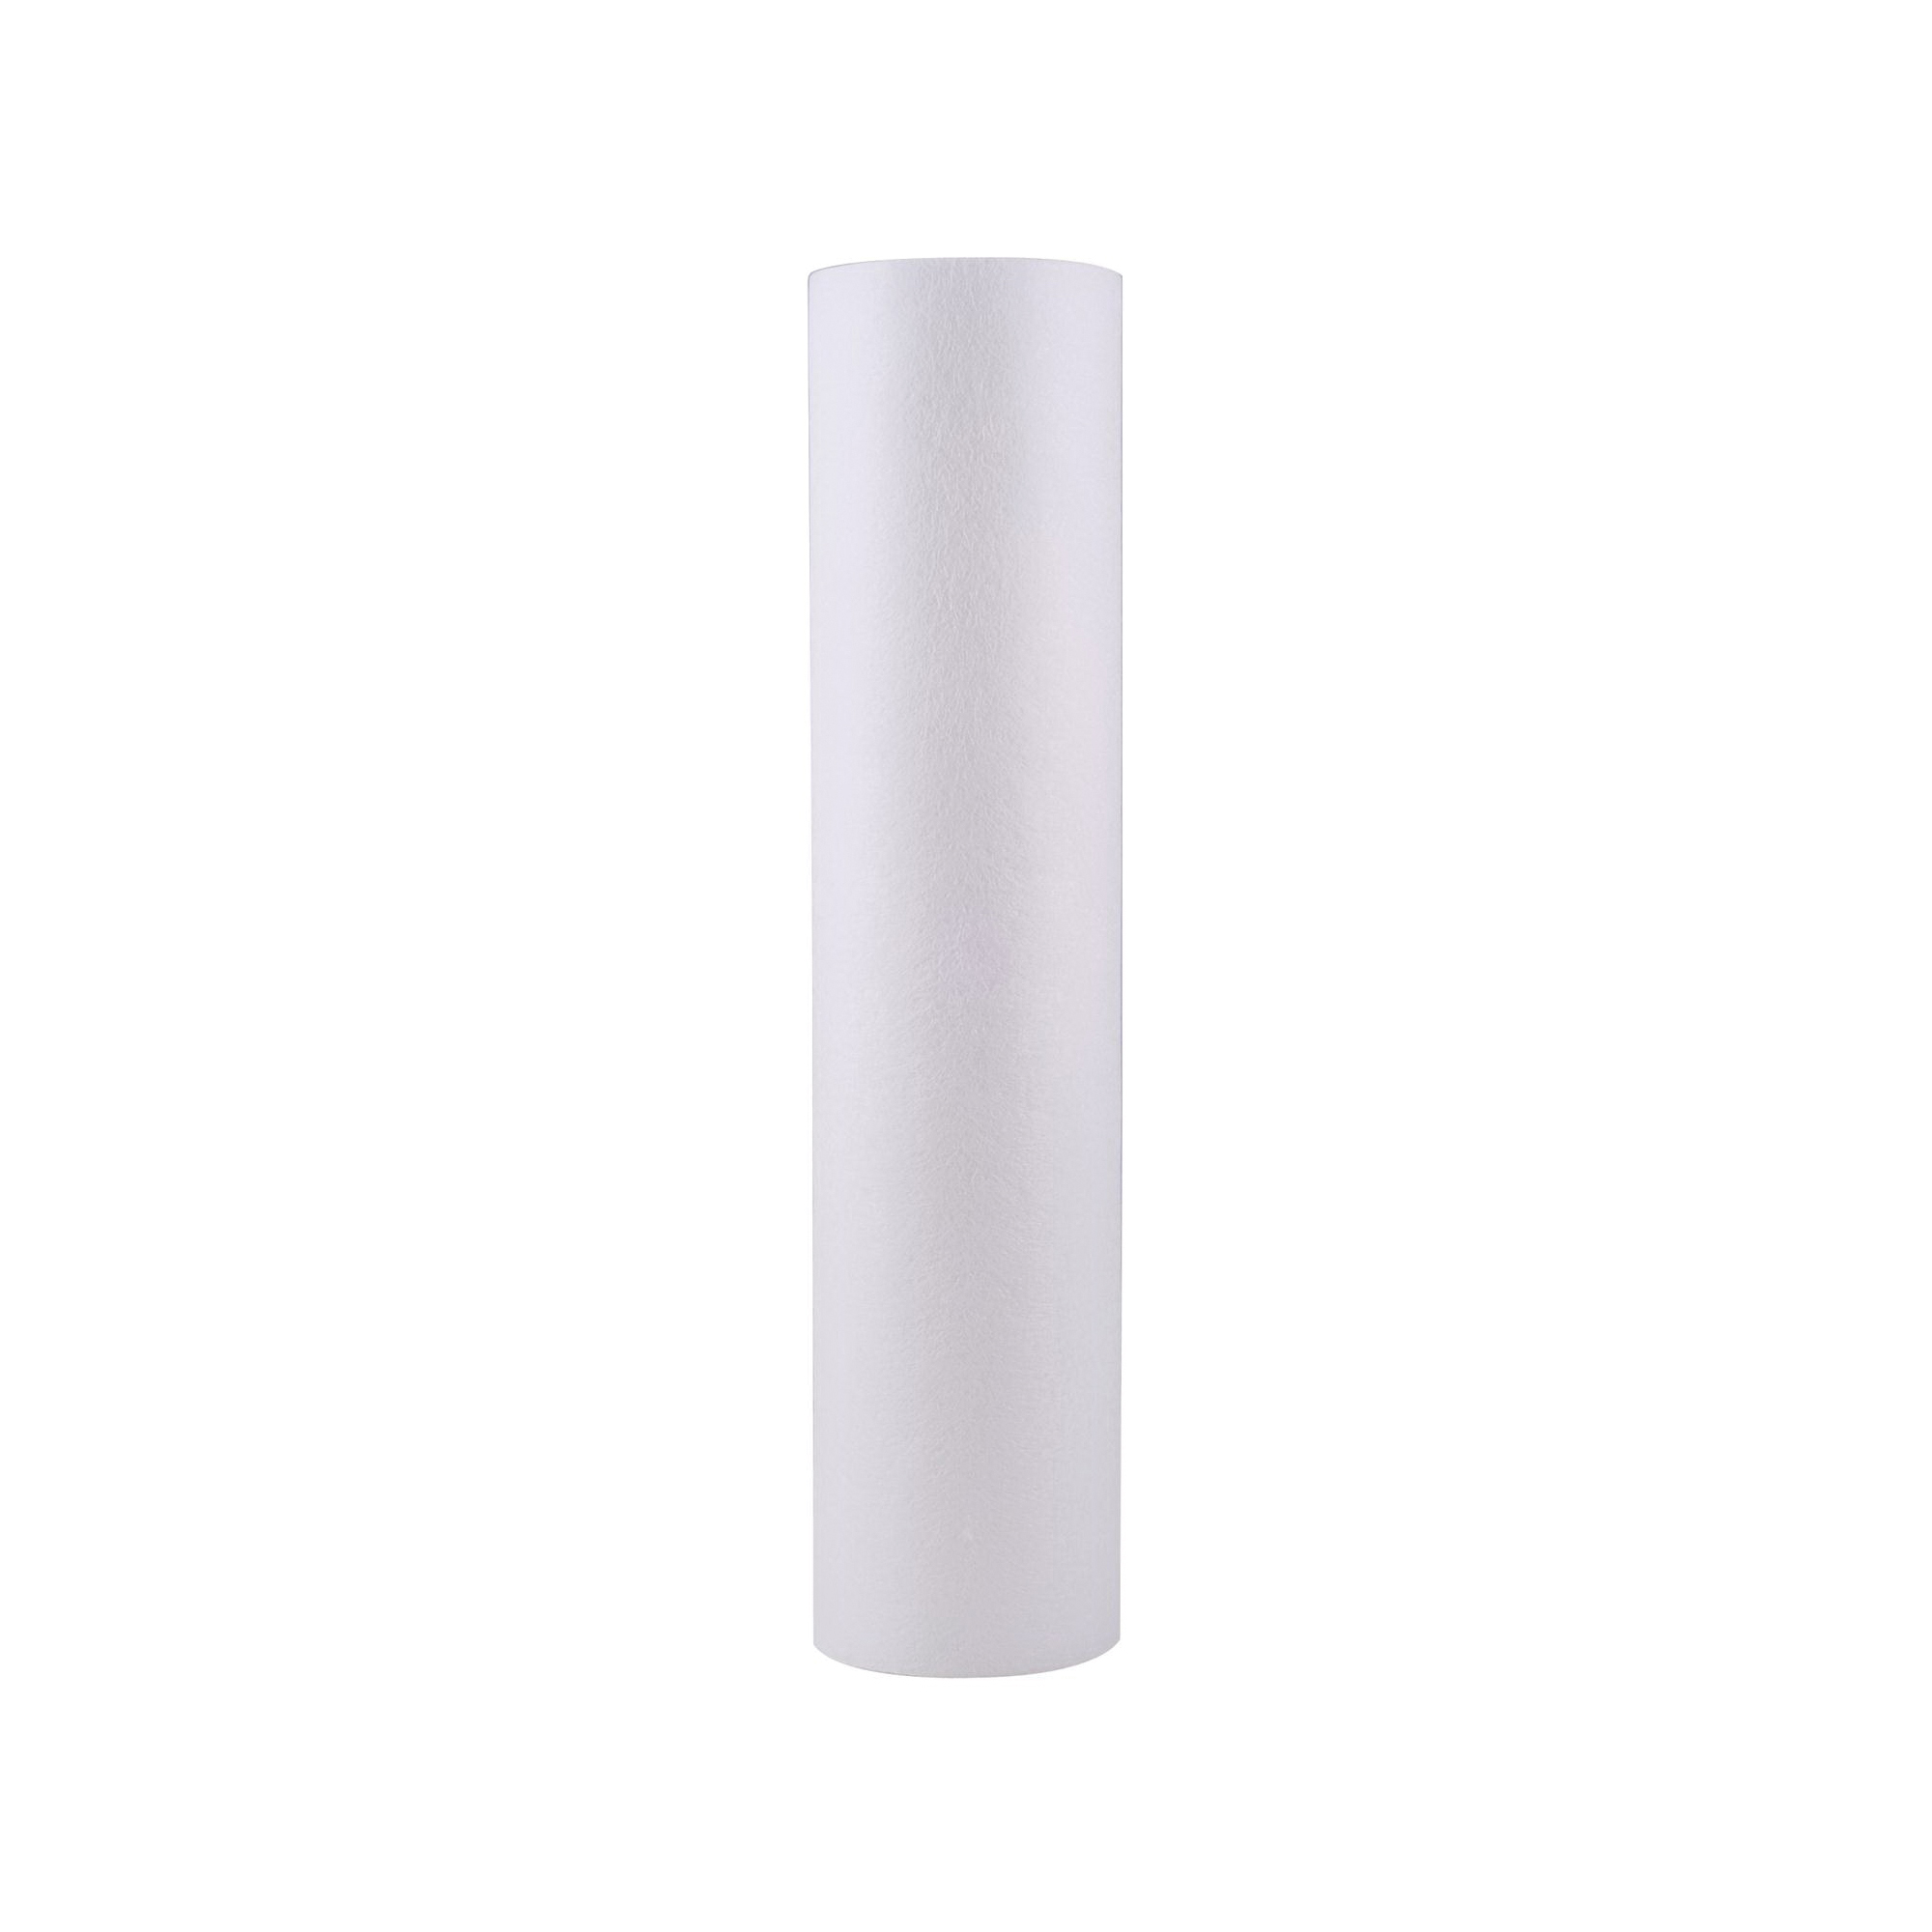 WATTS® 7100333 Filter Cartridge, 9-7/8 in L, Meltblown Polypropylene